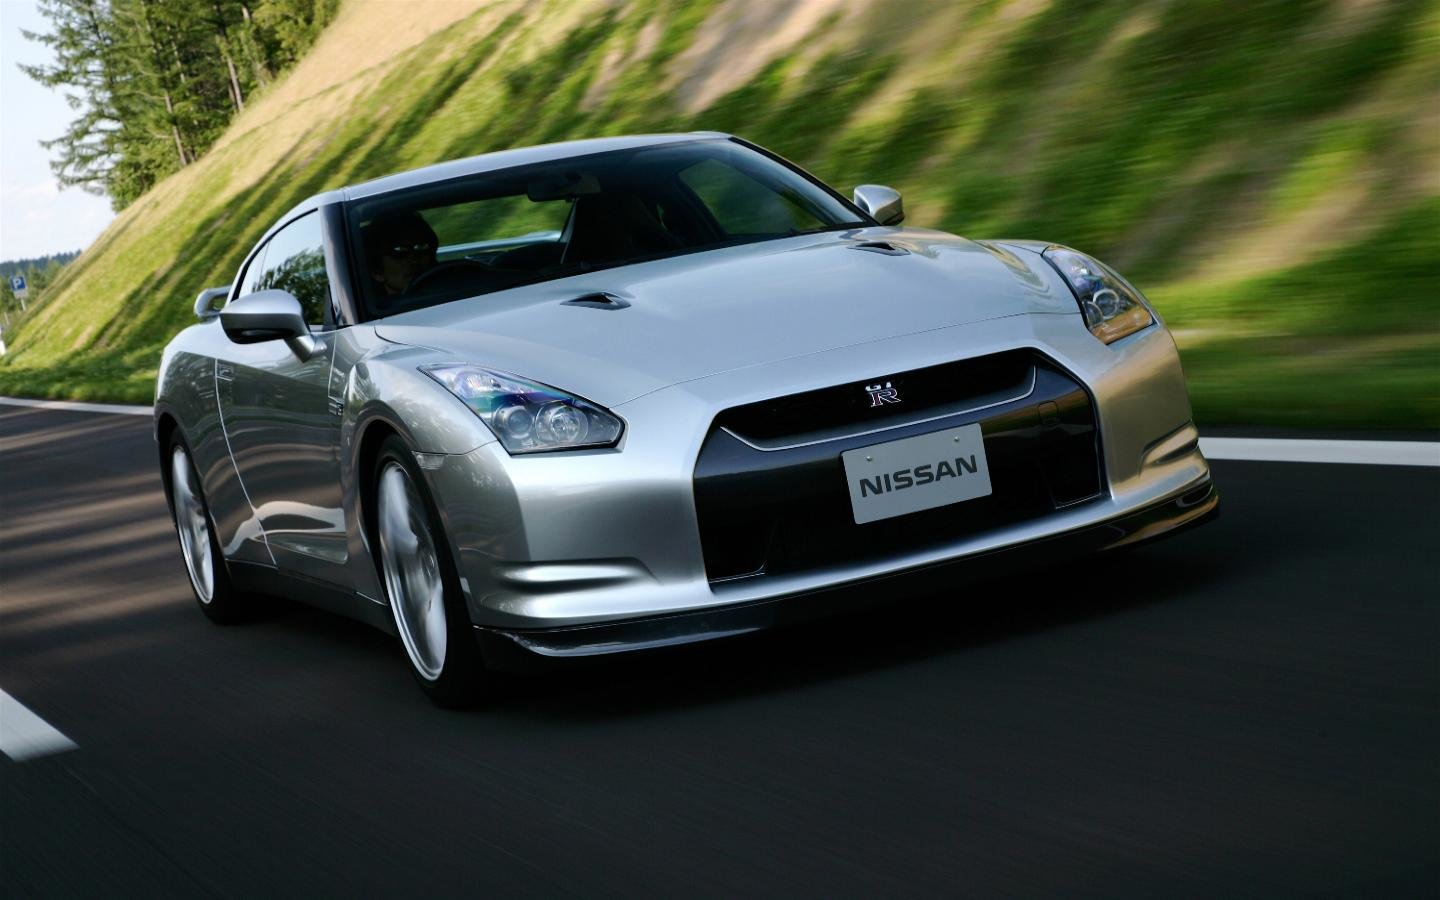 Best Nissan GT-R wallpaper ID:438610 for High Resolution hd 1440x900 PC